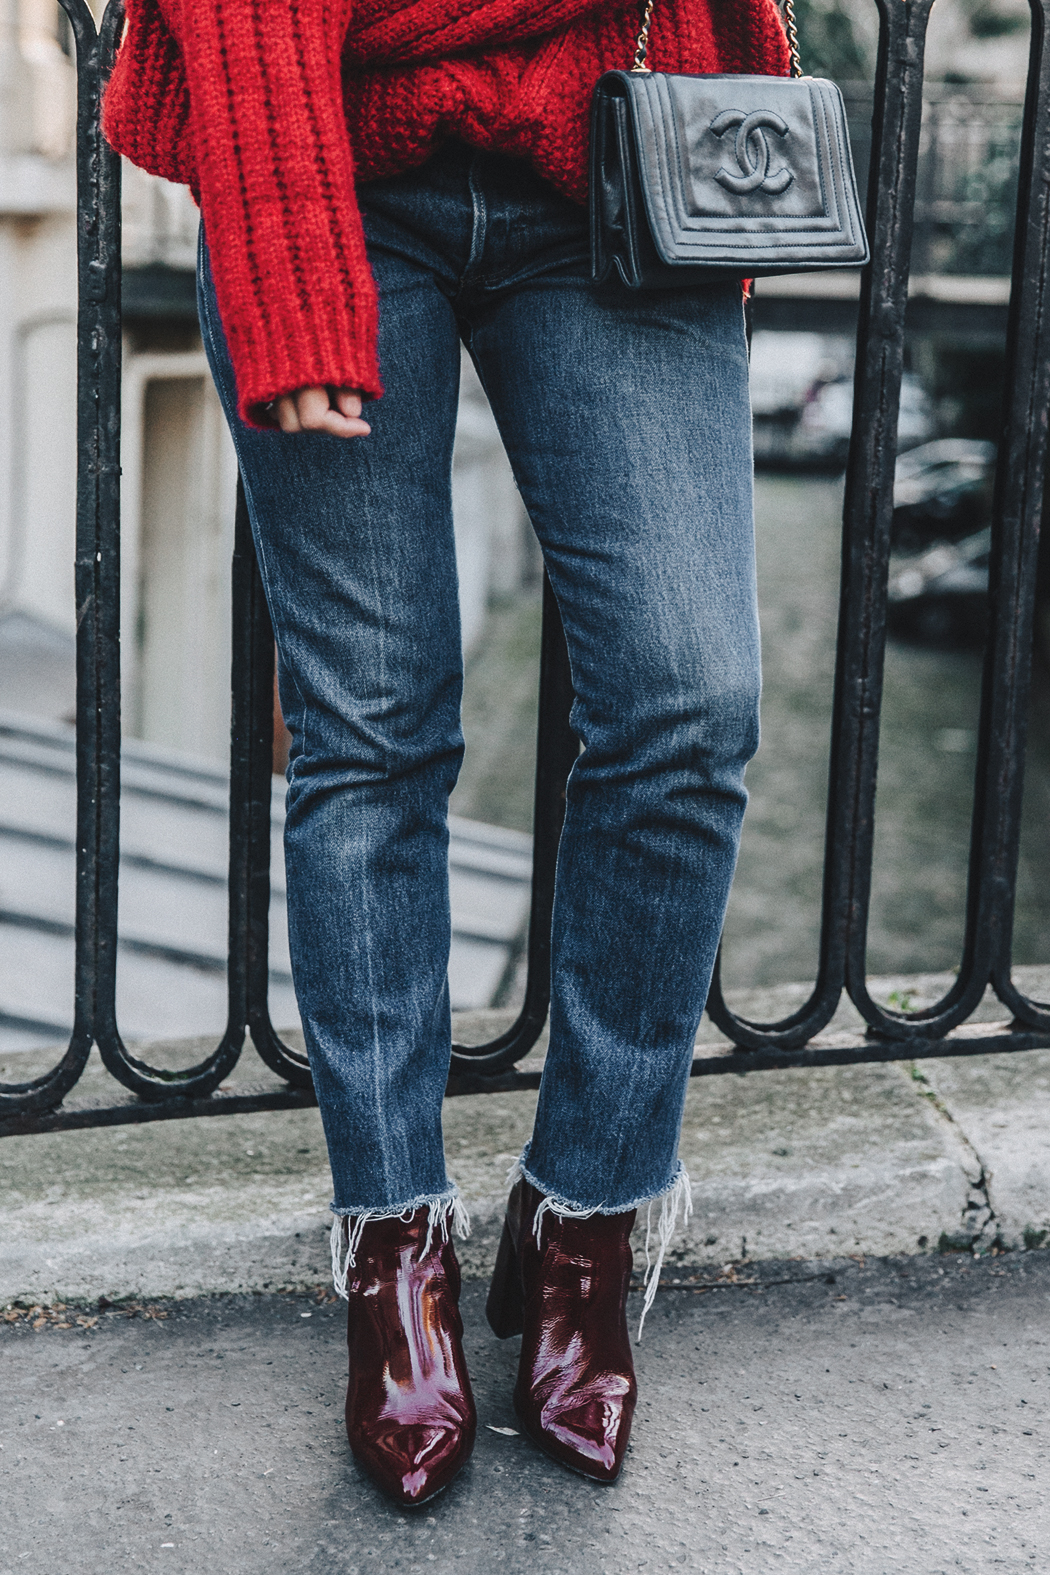 RED-KNITWEAR-Levis-Jeans-Red_Boots-Outfit-Street_Style-Levis_Vintage-16